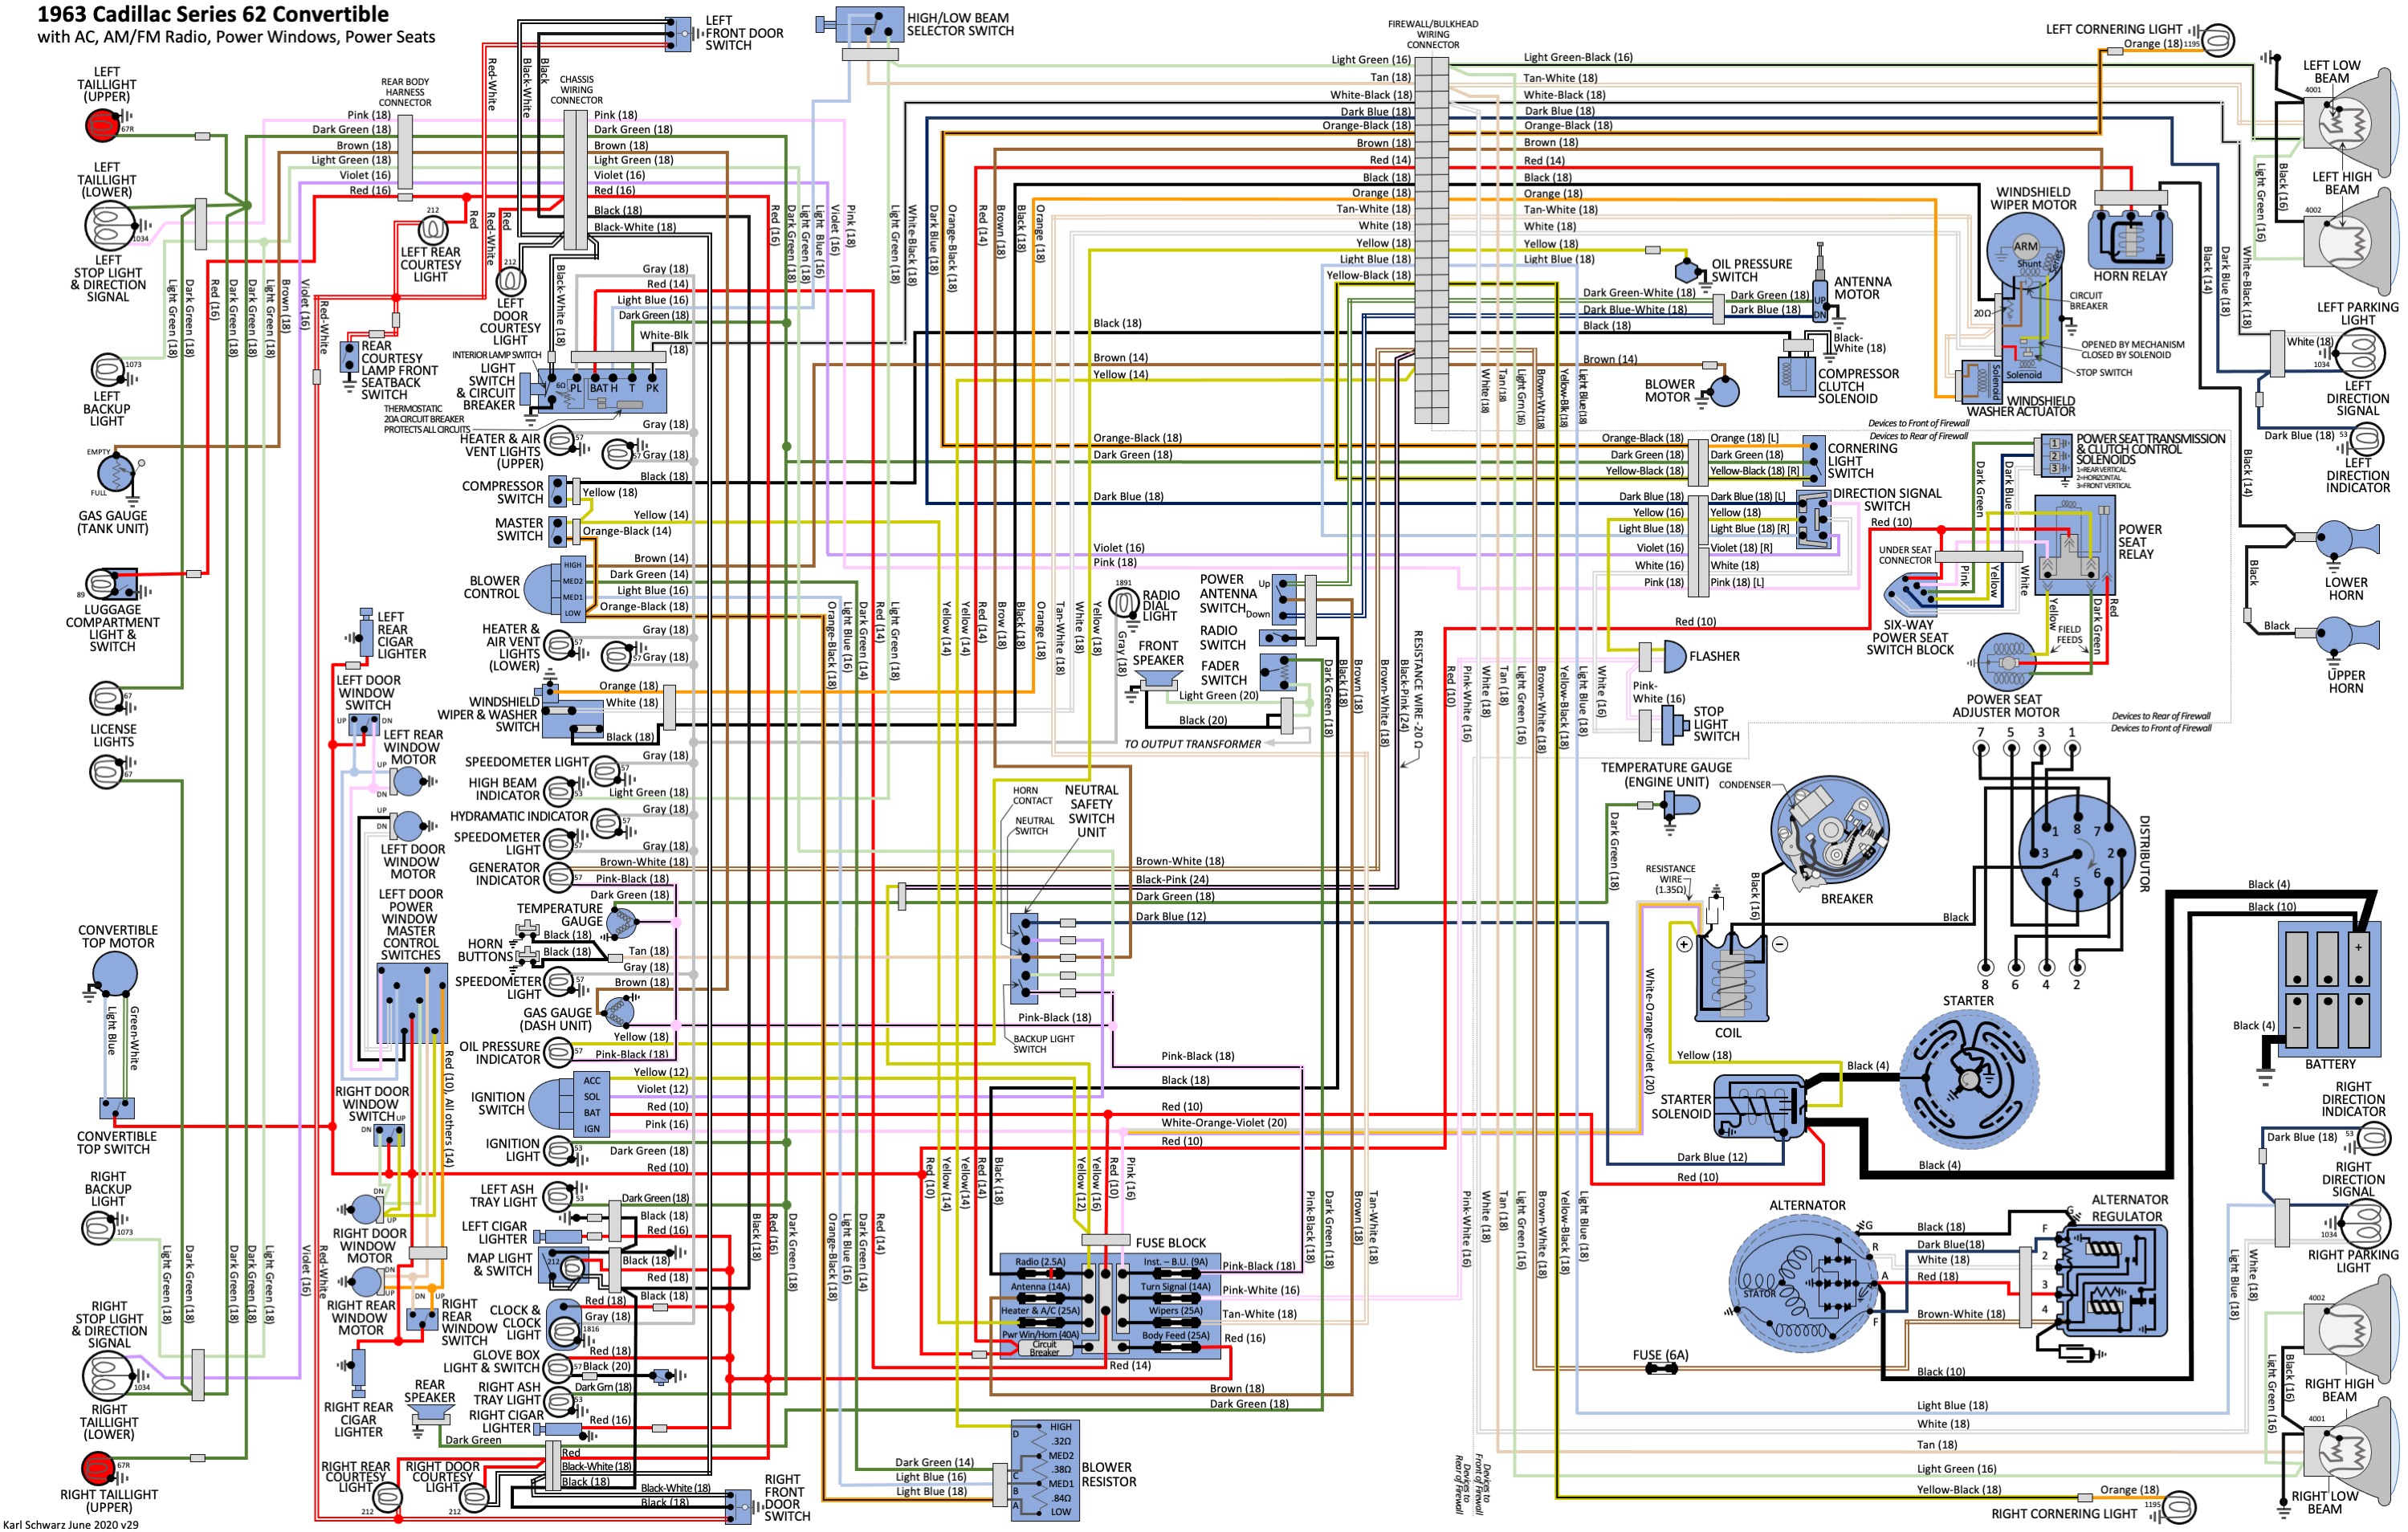 Color Wiring Diagram - 1963 Series 62 Convertible, AC, AM ...